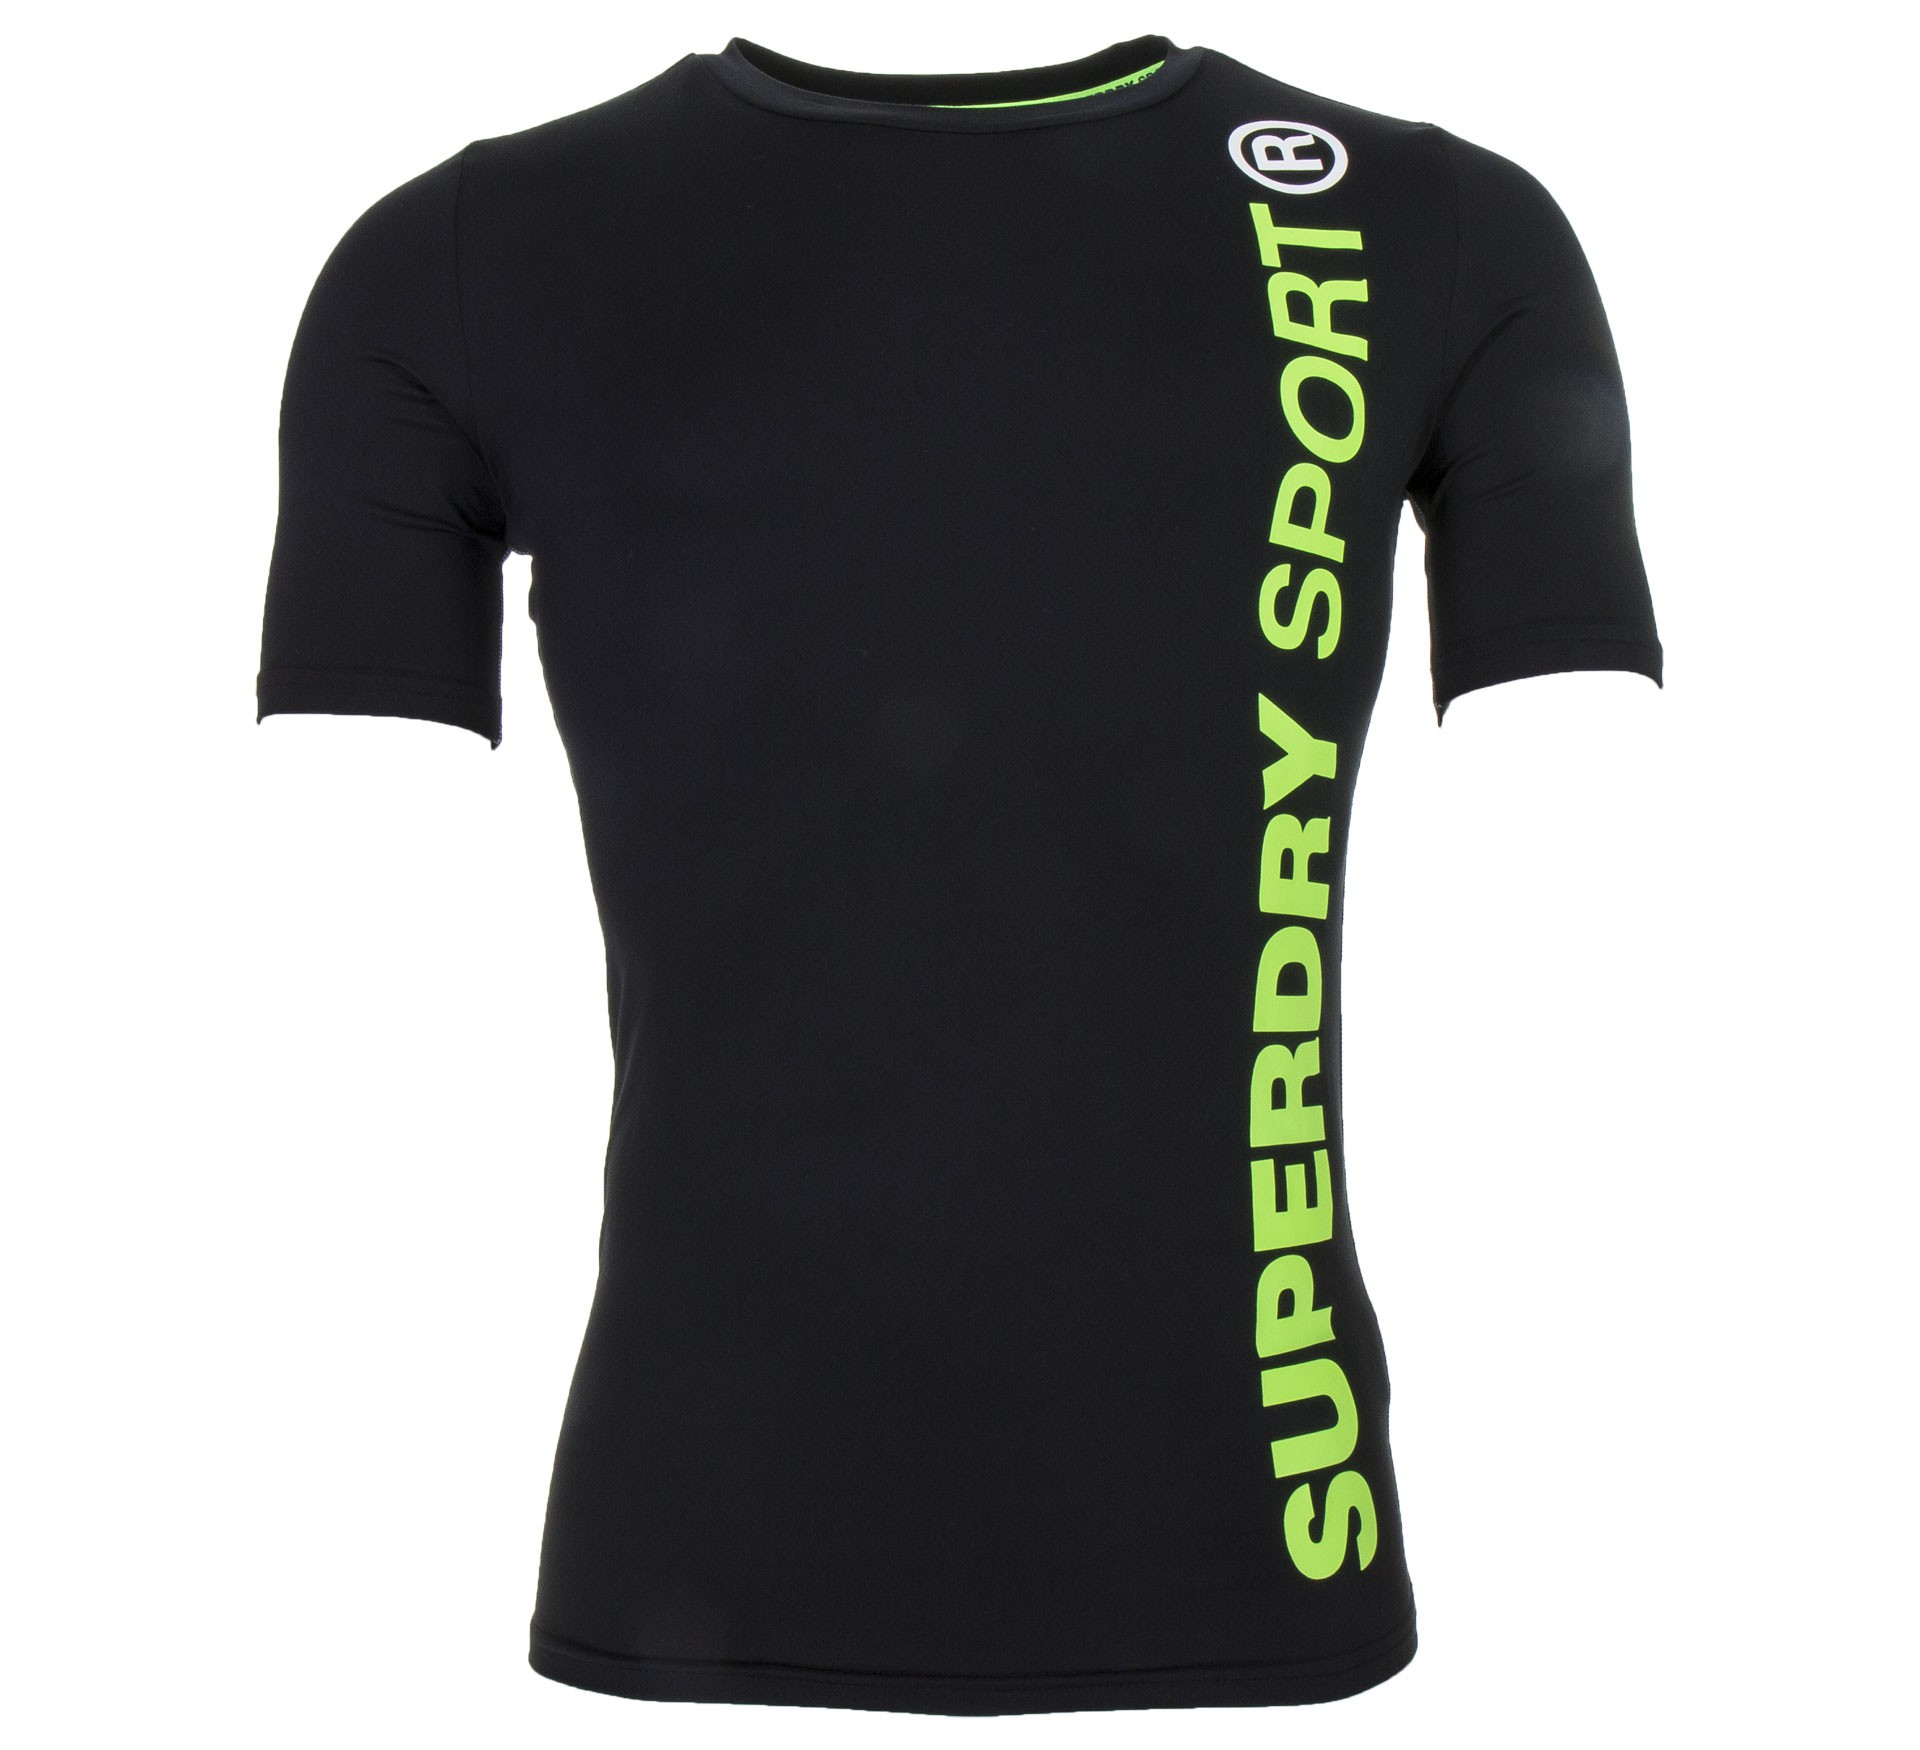 Plutosport - Superdry Sports Athletic S/S Tee